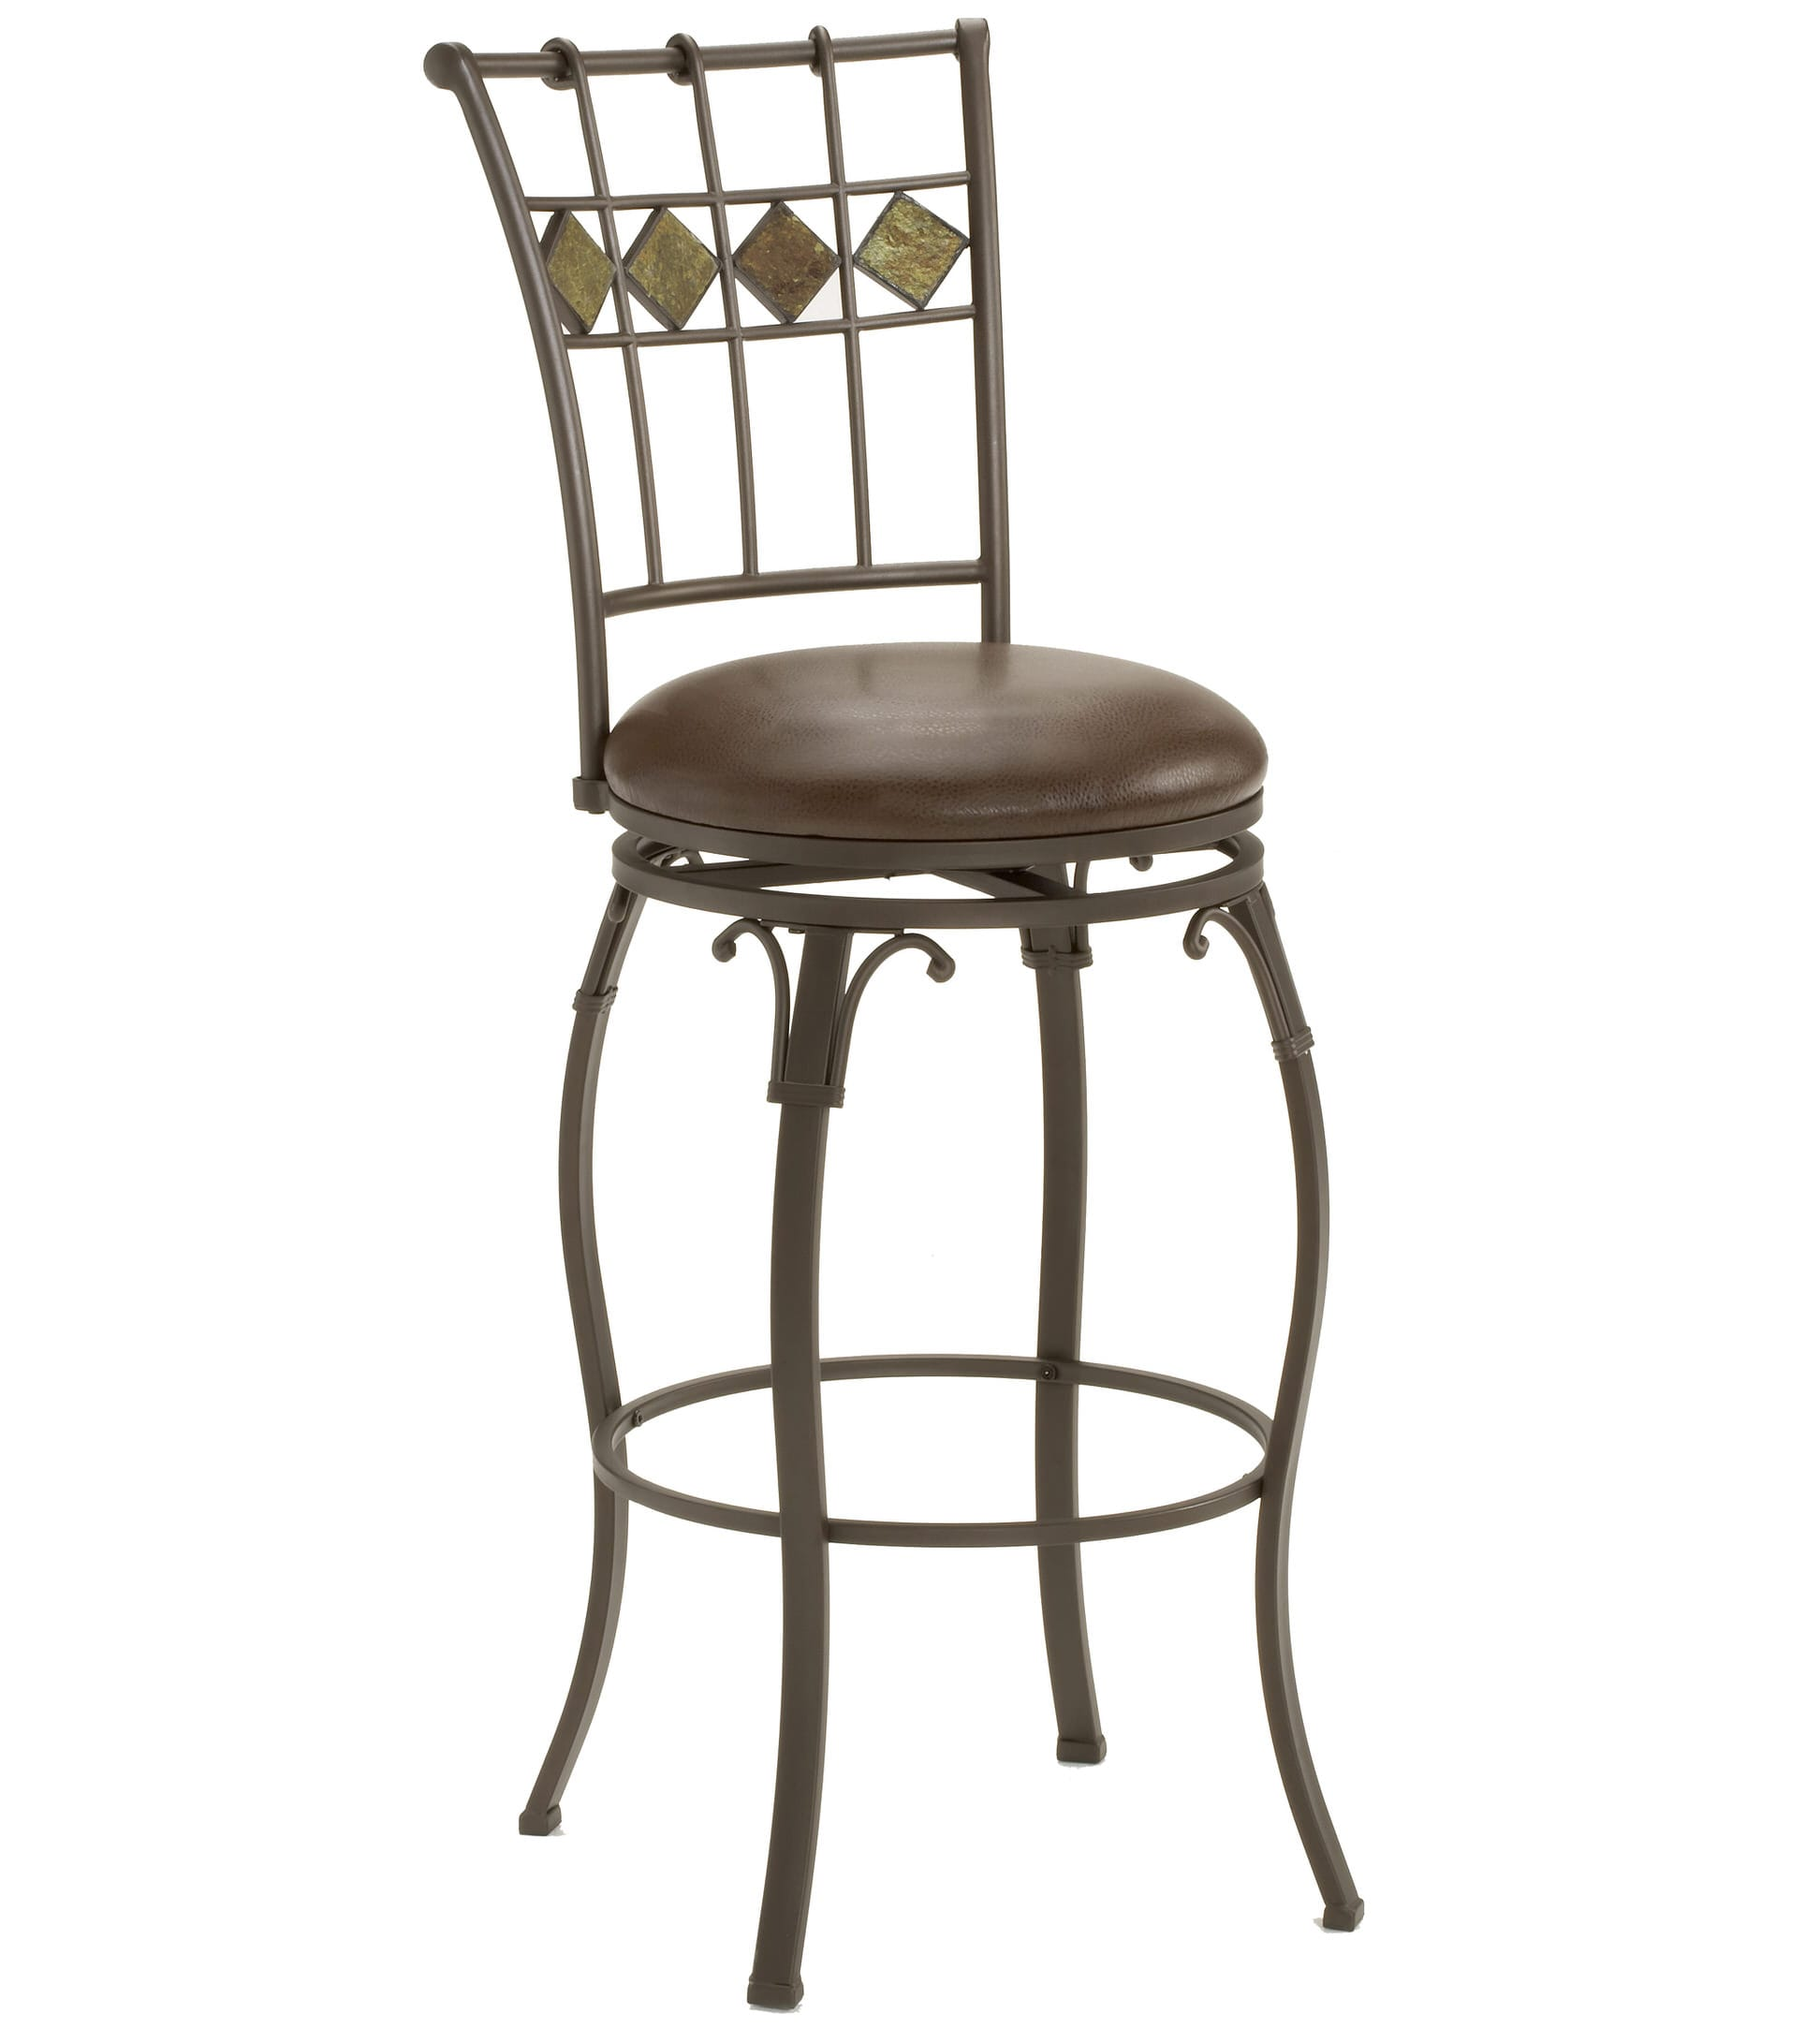 Outstanding Lakeview Slate Back Swivel Counter Stool 4264 826 By Hillsdale Creativecarmelina Interior Chair Design Creativecarmelinacom